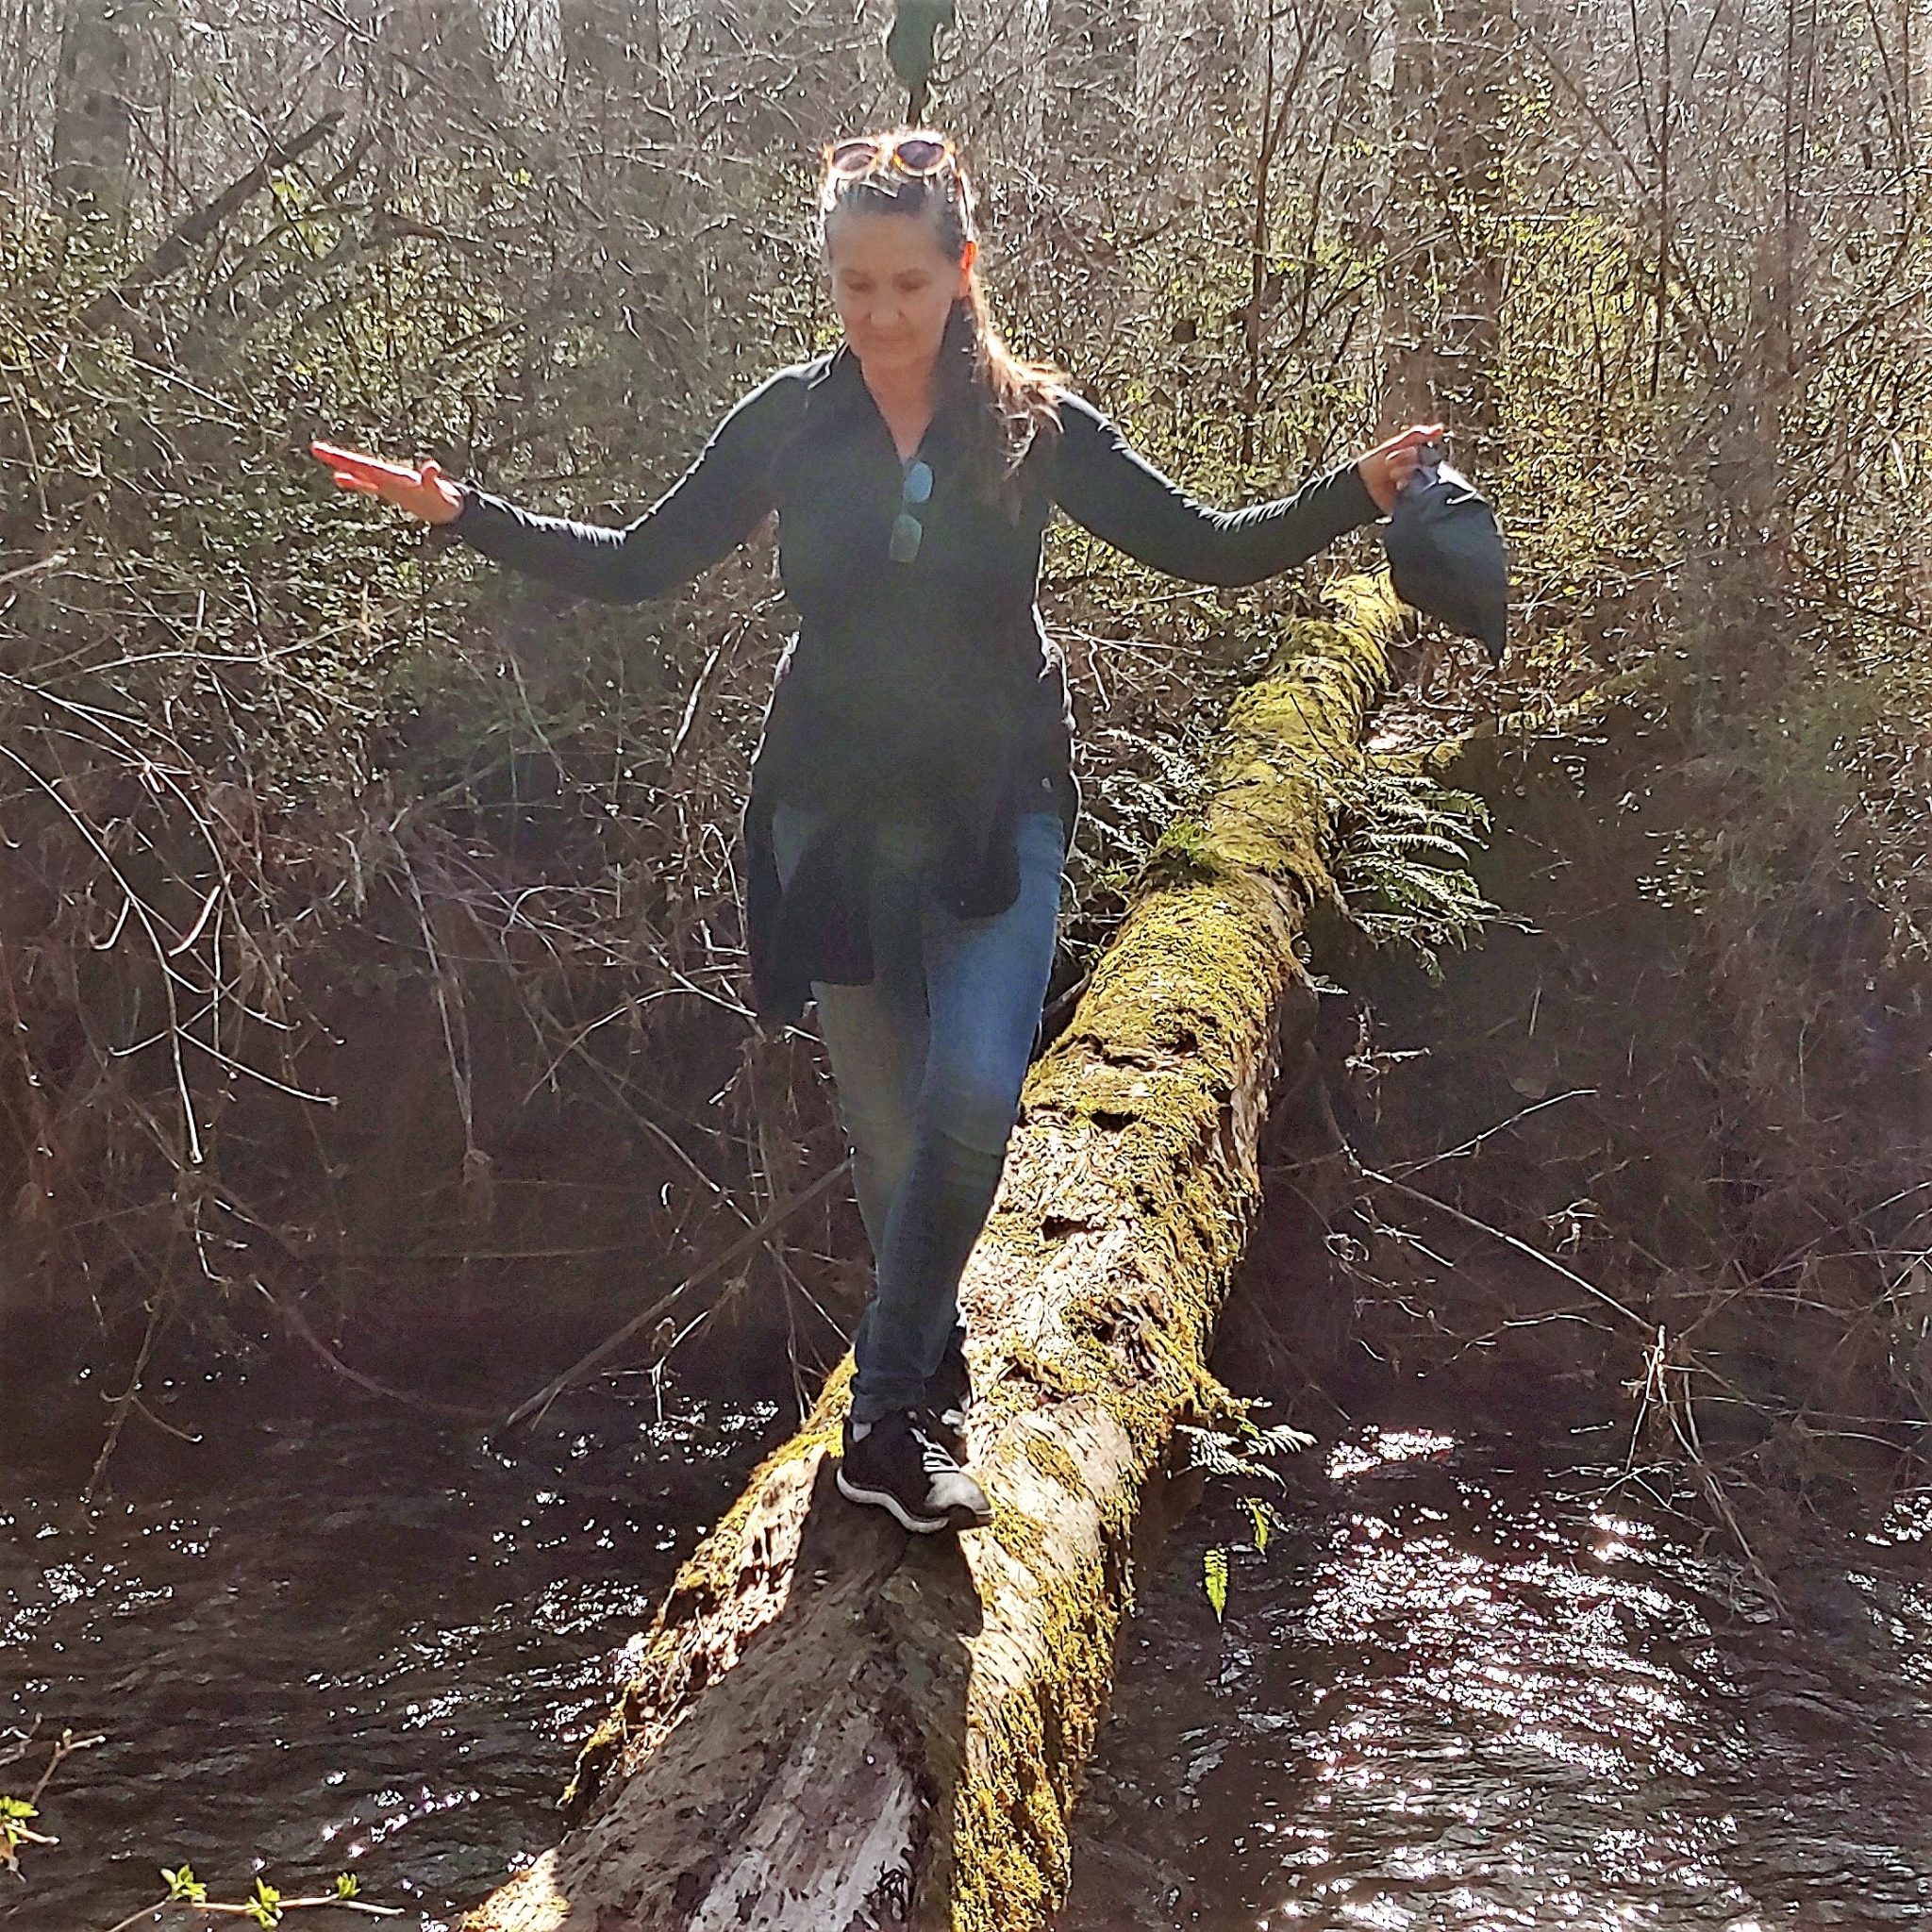 balancing on a log over a creek Introvert skills for interesting times